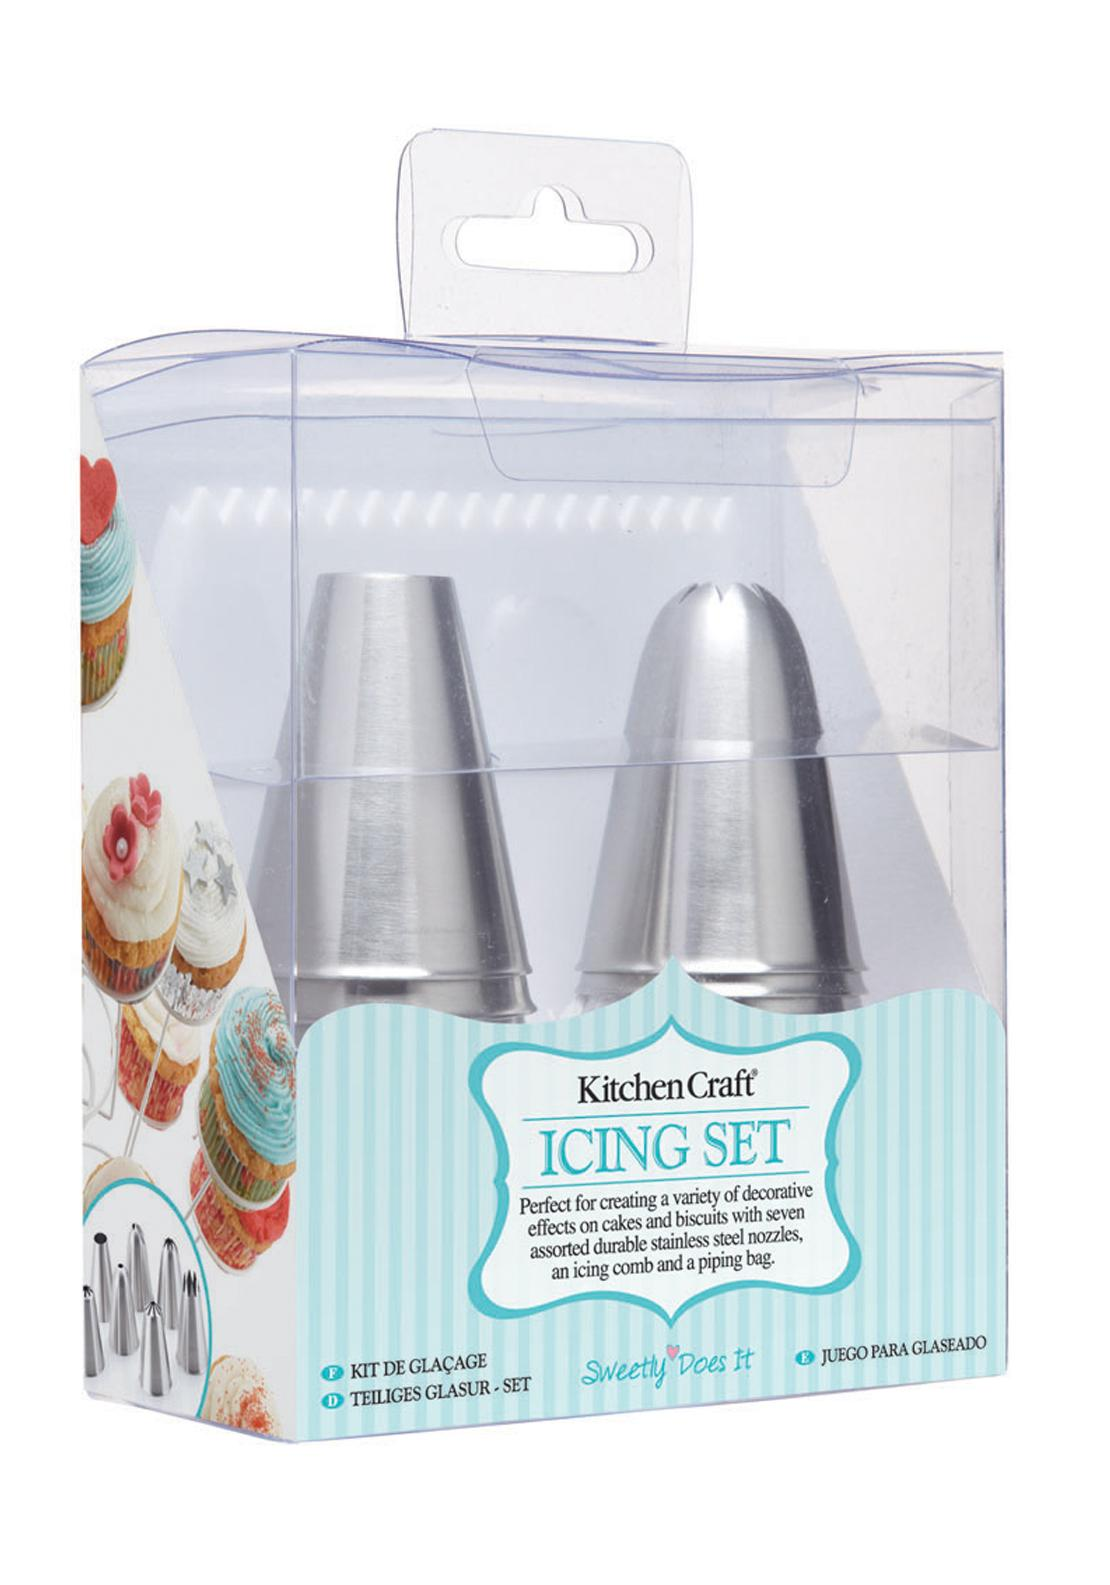 Sweetly Does It Icing Set with Bag